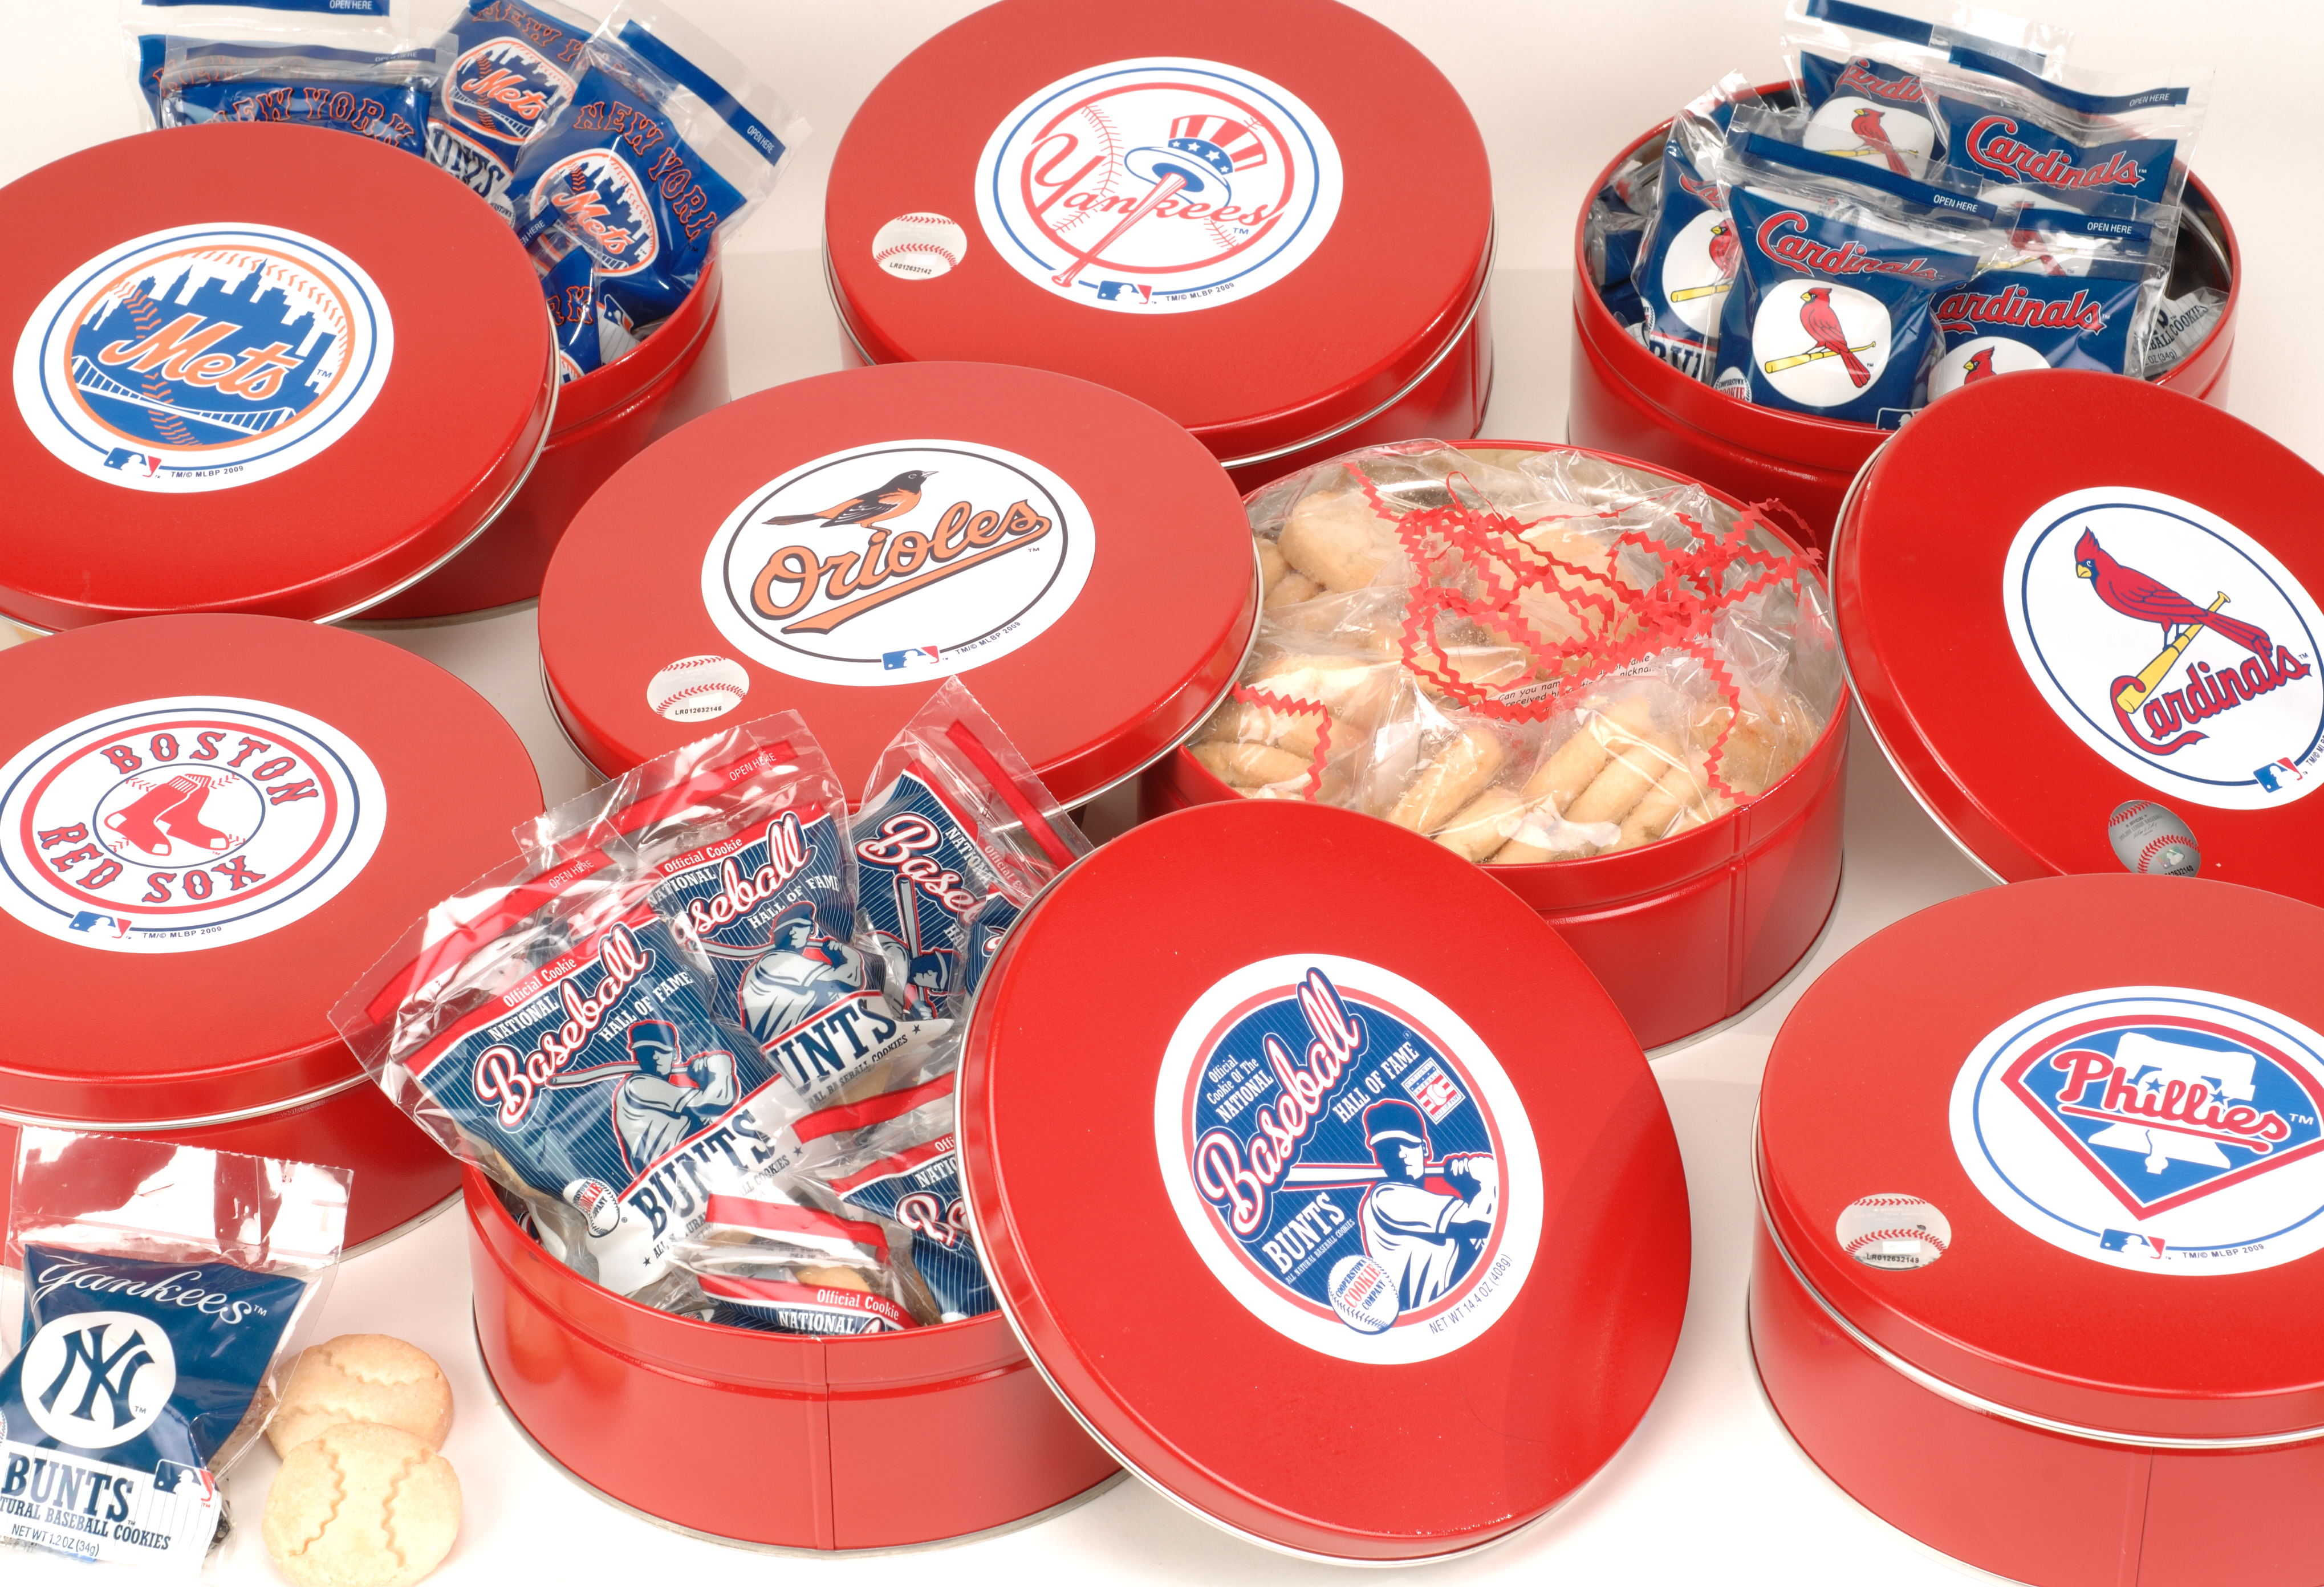 We have baseball cookie tins that celebrate your favorite MLB team